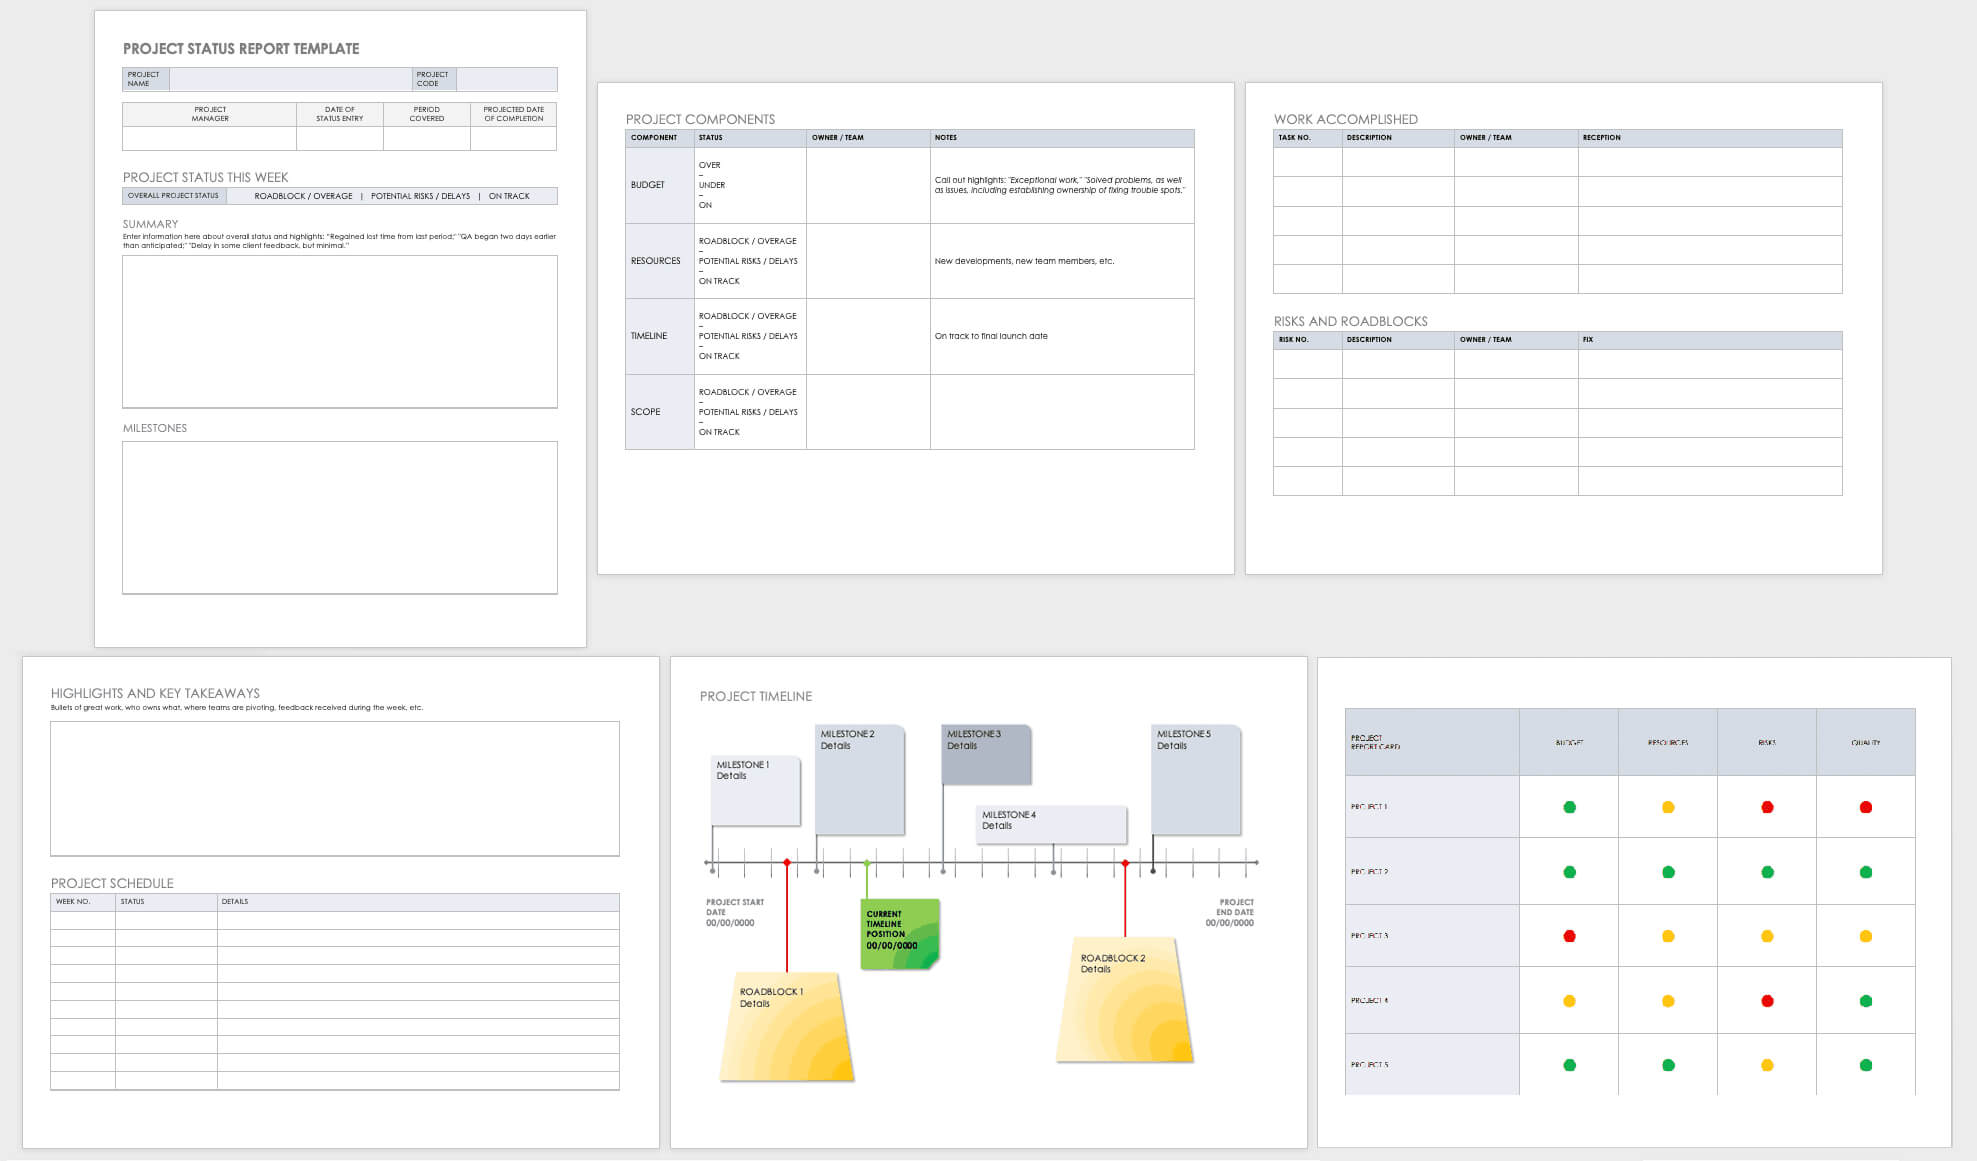 Free Project Report Templates | Smartsheet Intended For Project Management Status Report Template